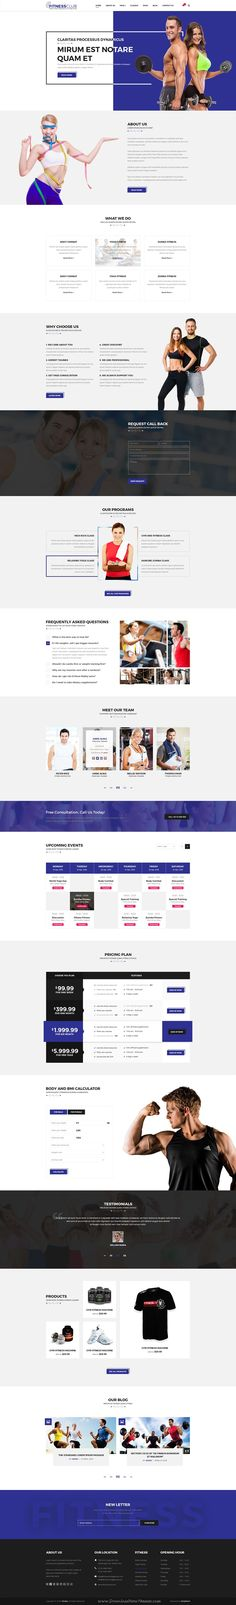 Rent It - Car Rental Management PSD Theme Web - Design - rental management template